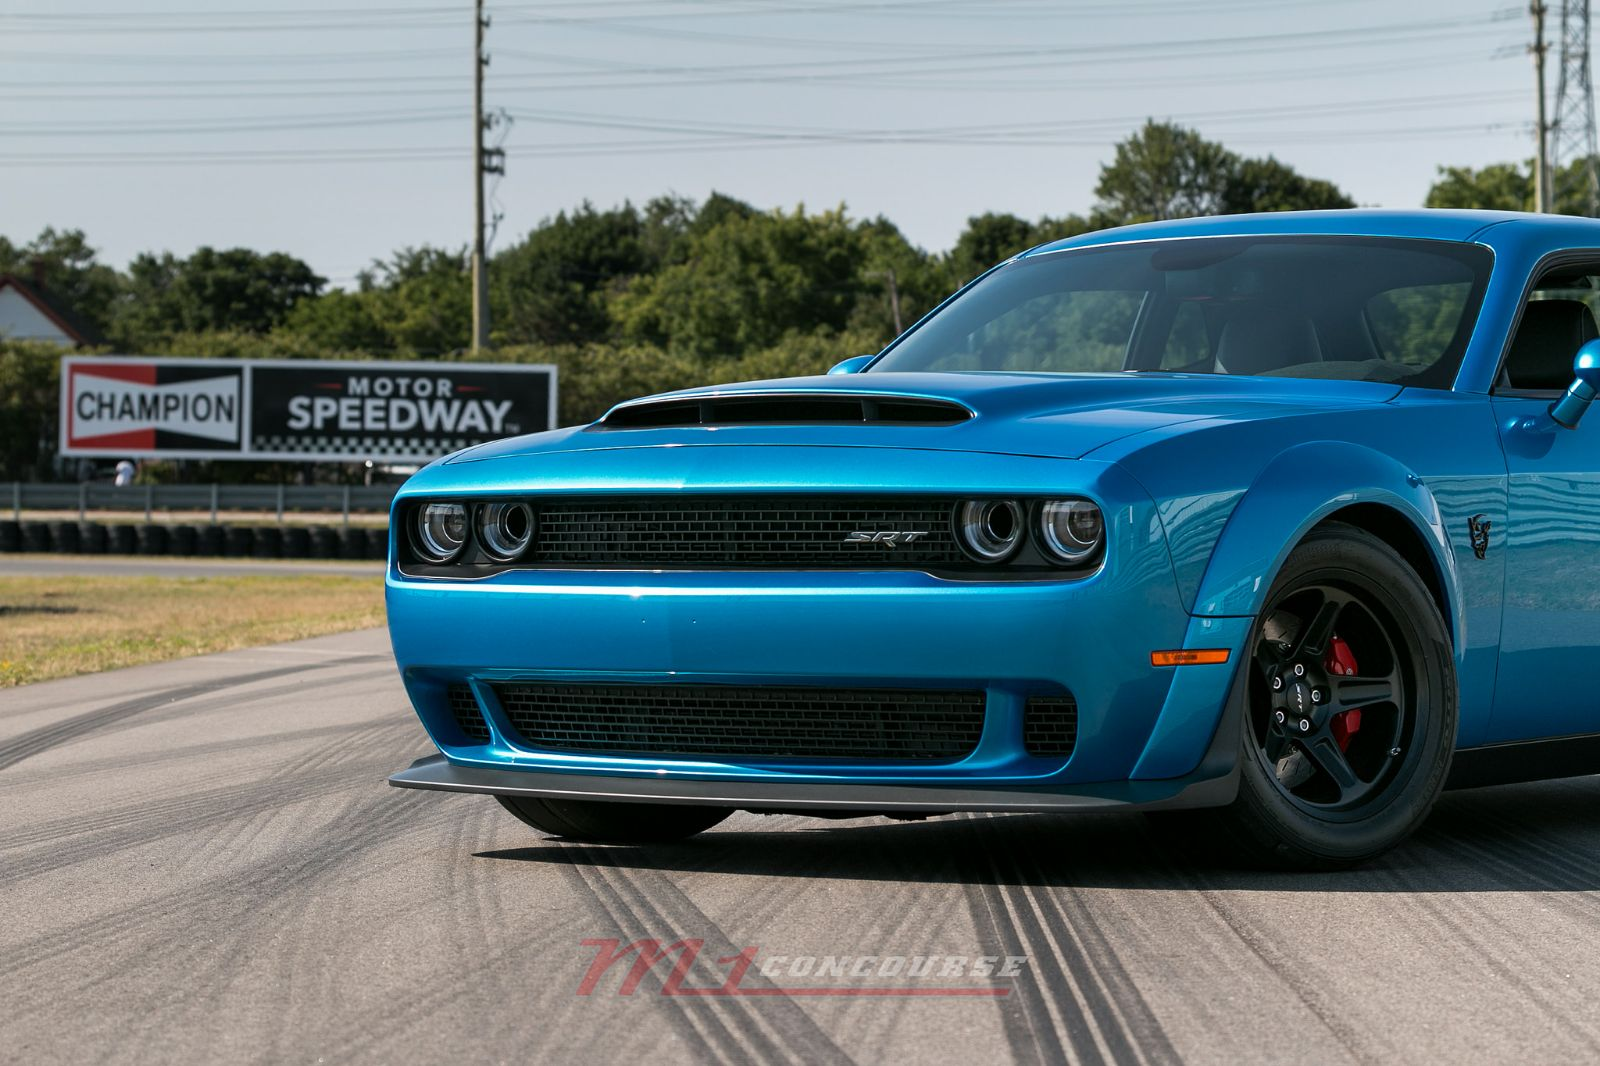 b5 blue demon high rez photos | SRT Hellcat Forum